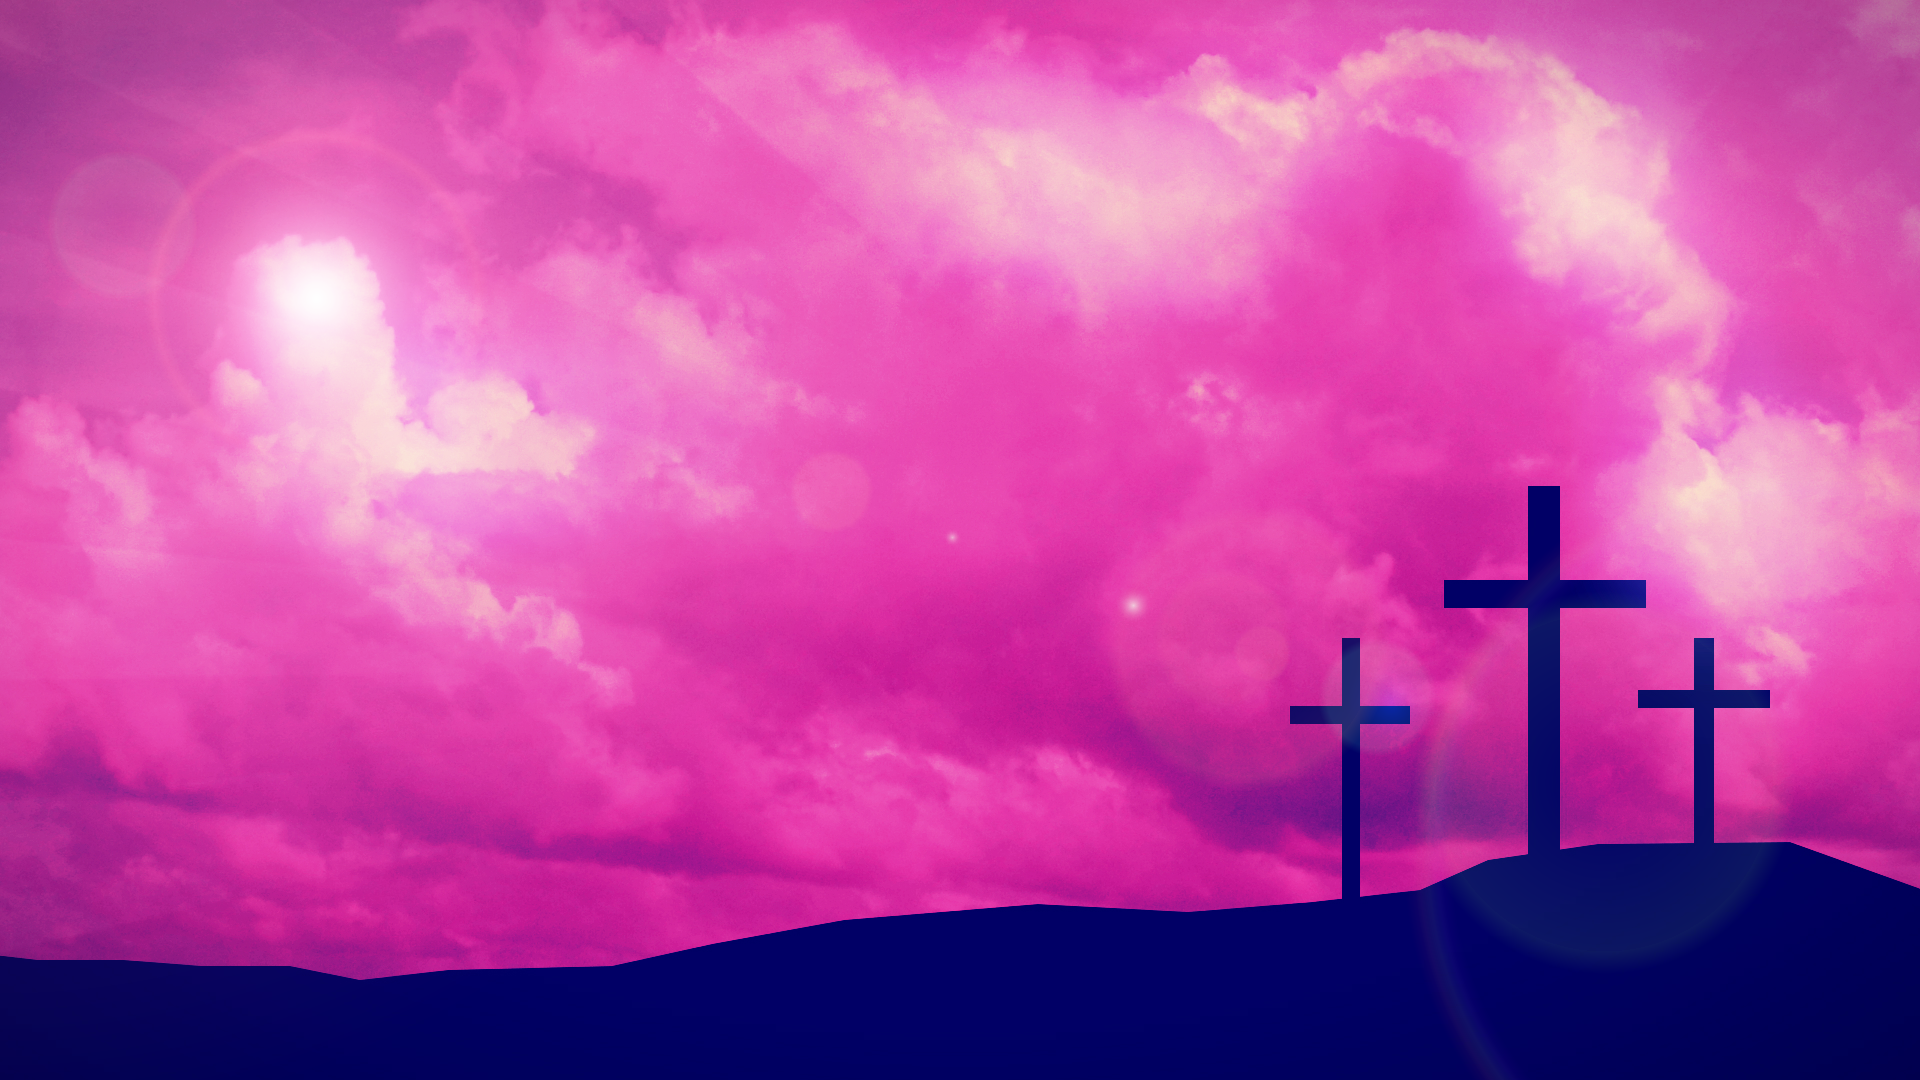 lenten season wallpaper